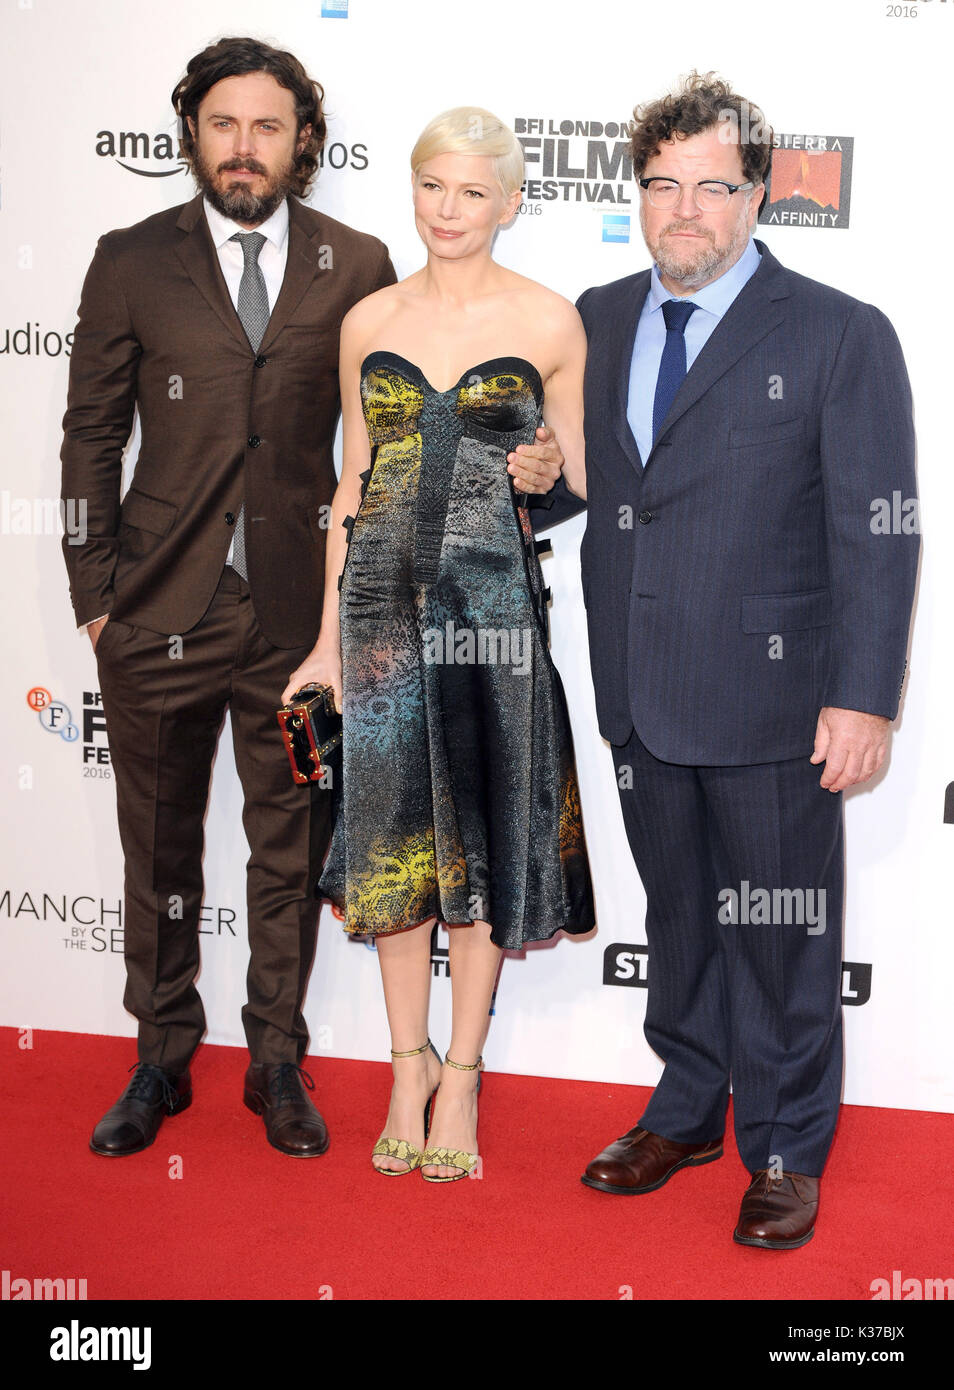 Photo Must Be Credited ©Alpha Press 079965 08/10/2016 Casey Affleck, Michelle Williams and director Kenneth Lonergan at the Manchester By The Sea International Movie Premiere screening during the 60th BFI London Film Festival at Odeon Leicester Square in London. - Stock Image